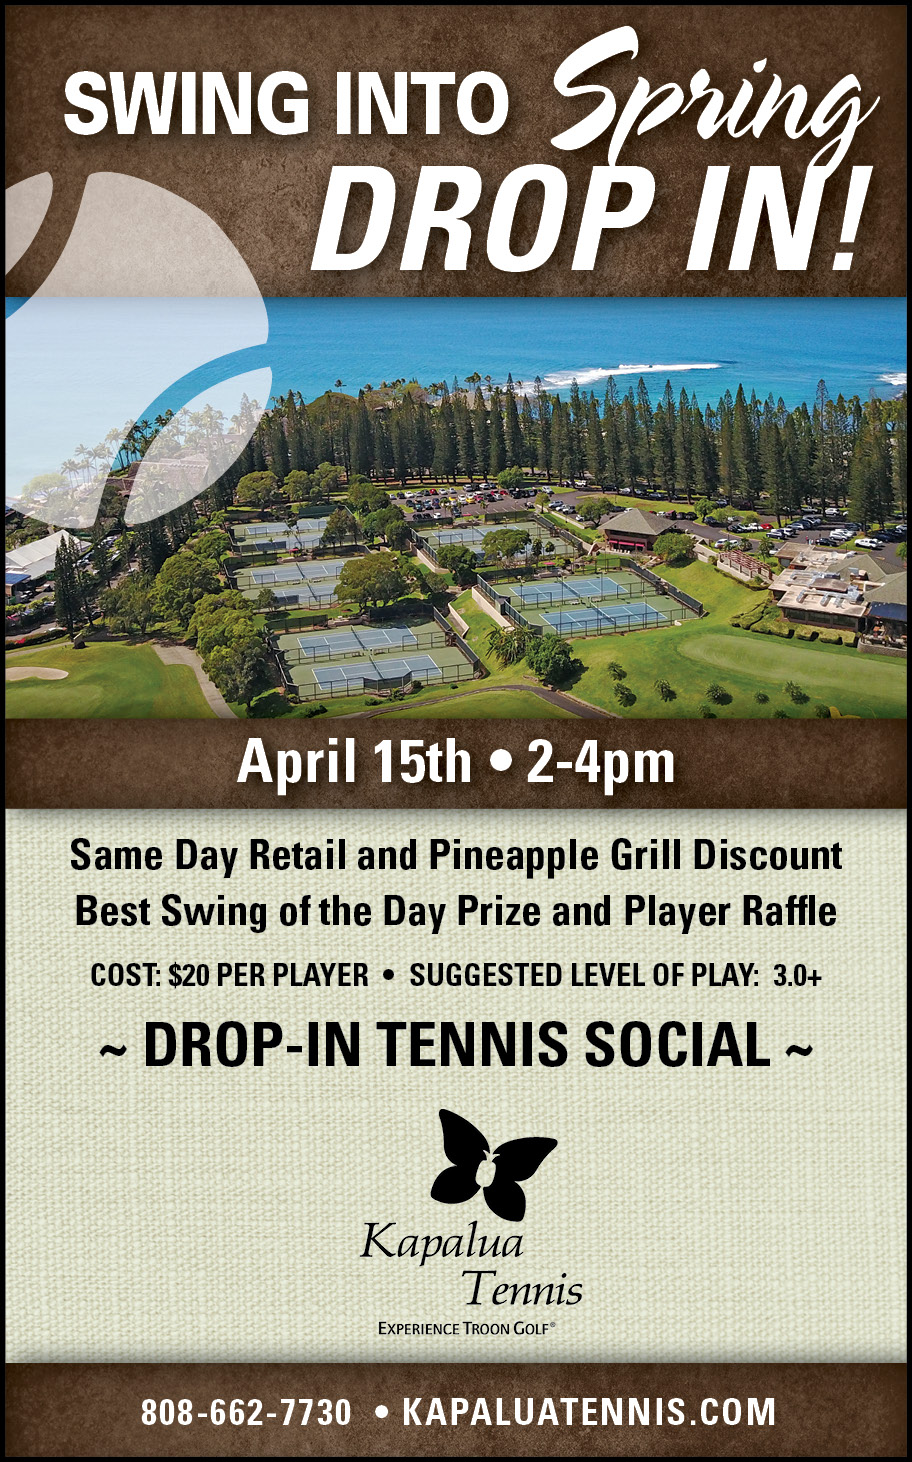 Swing into Spring Tennis Social